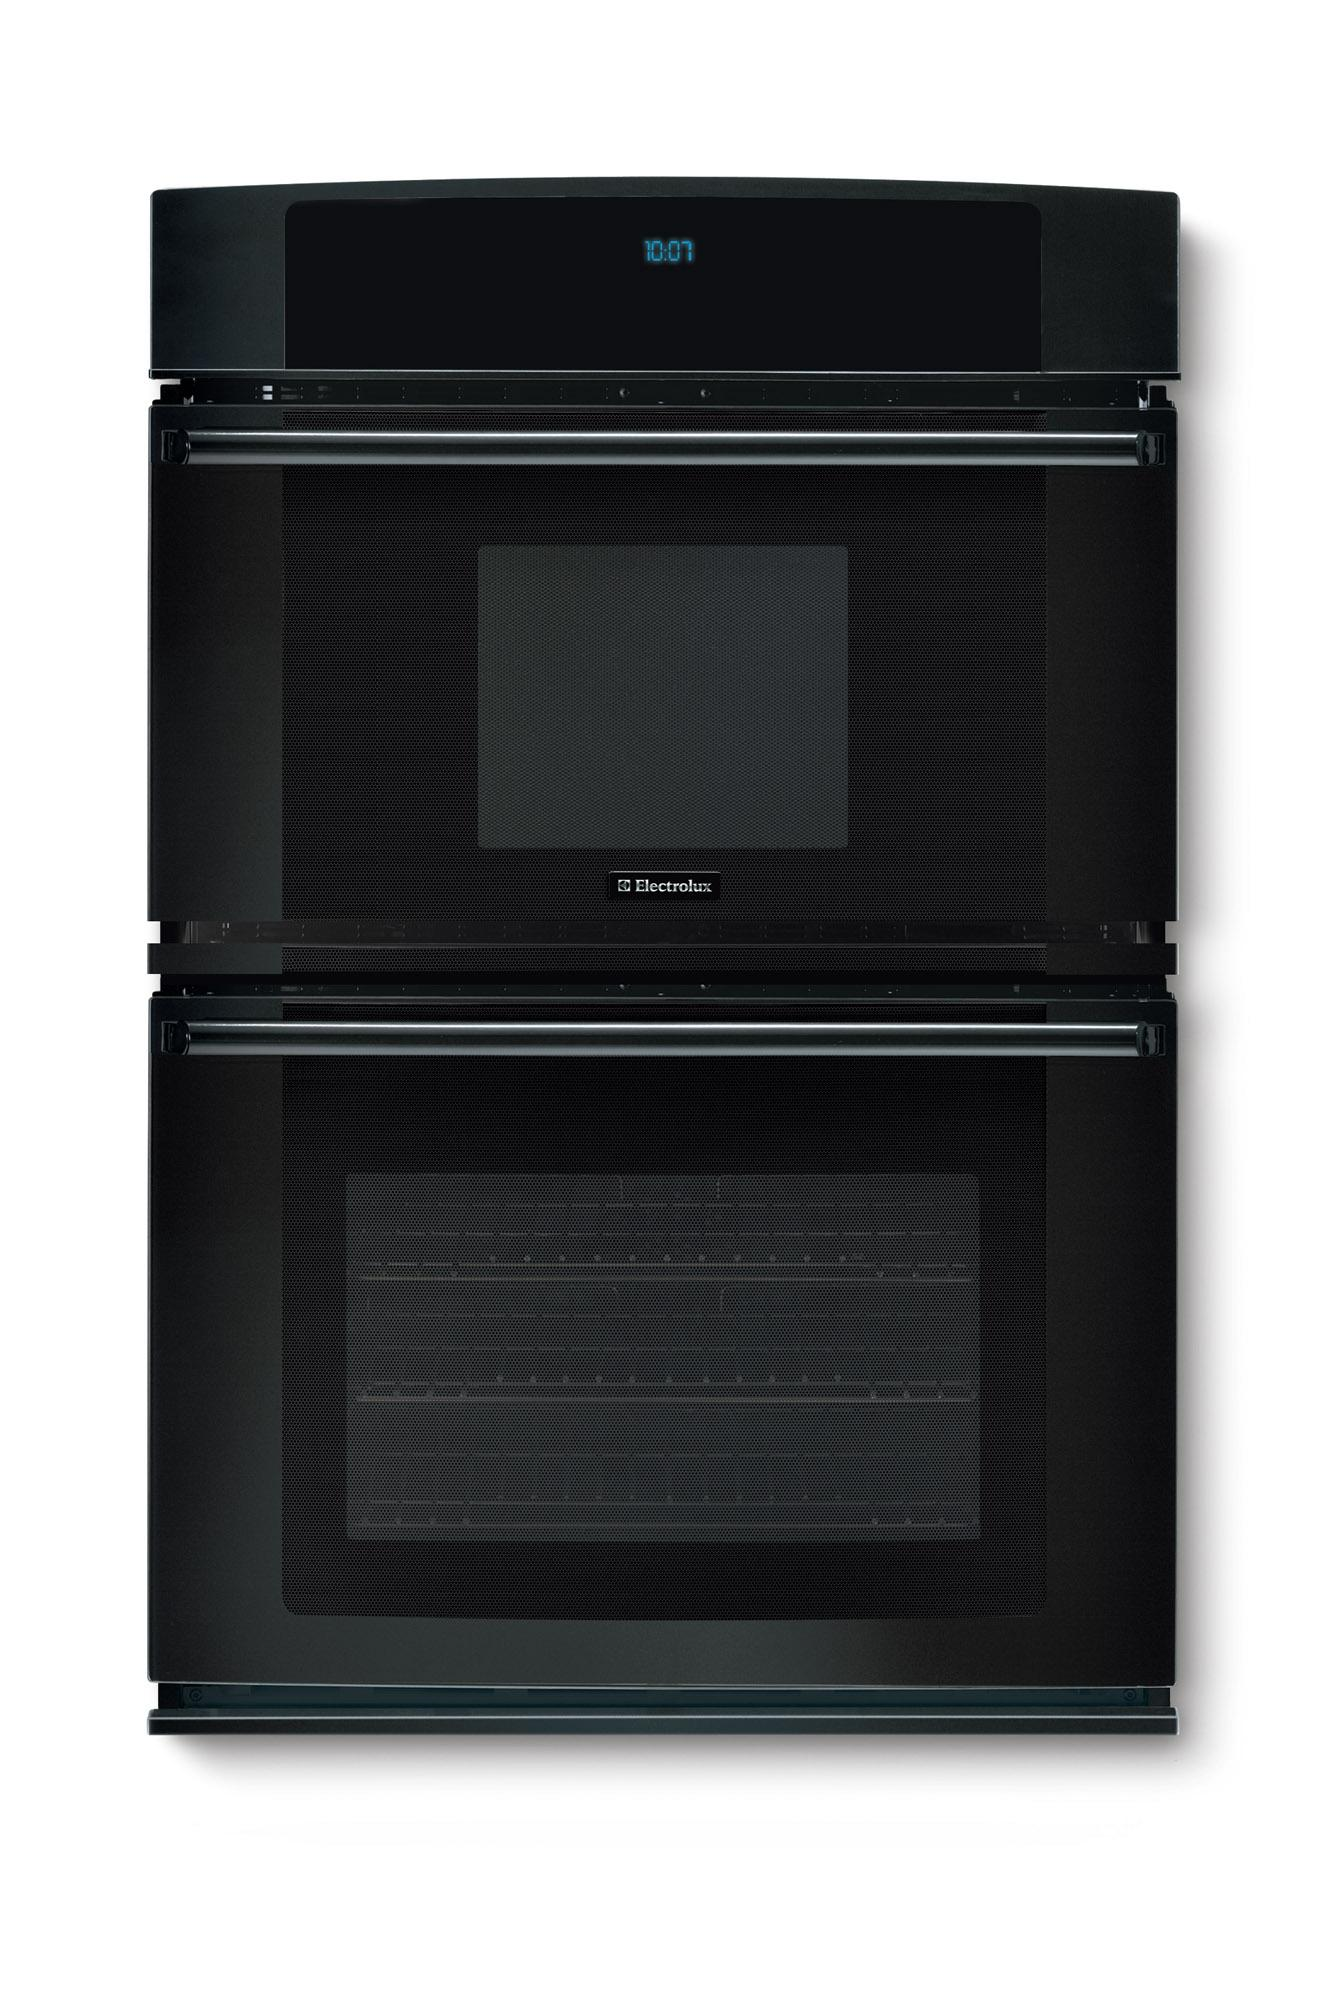 Electrolux Ew30mc65js 30 Quot Microwave Combination Wall Oven